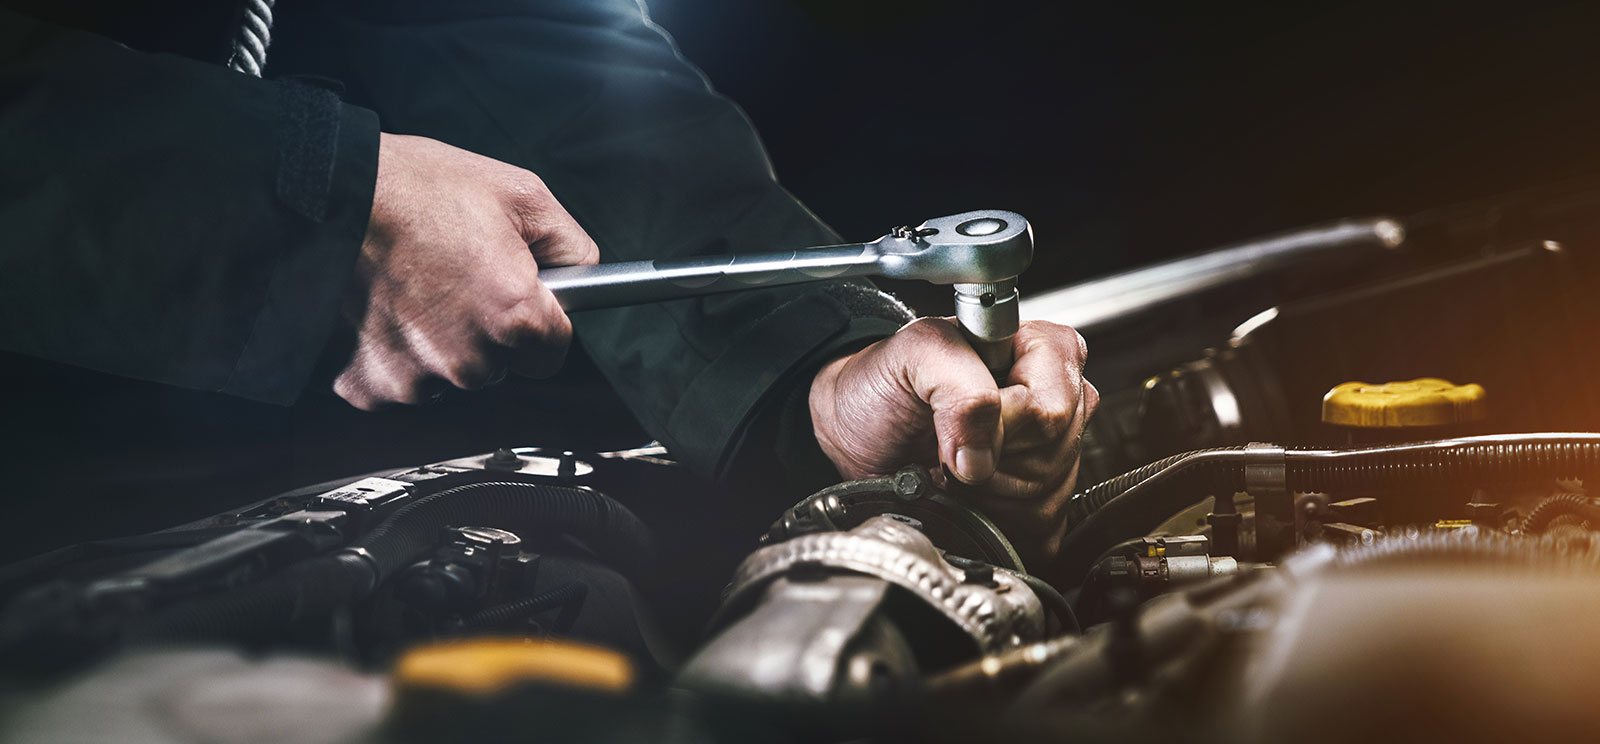 Auto technician working on engine